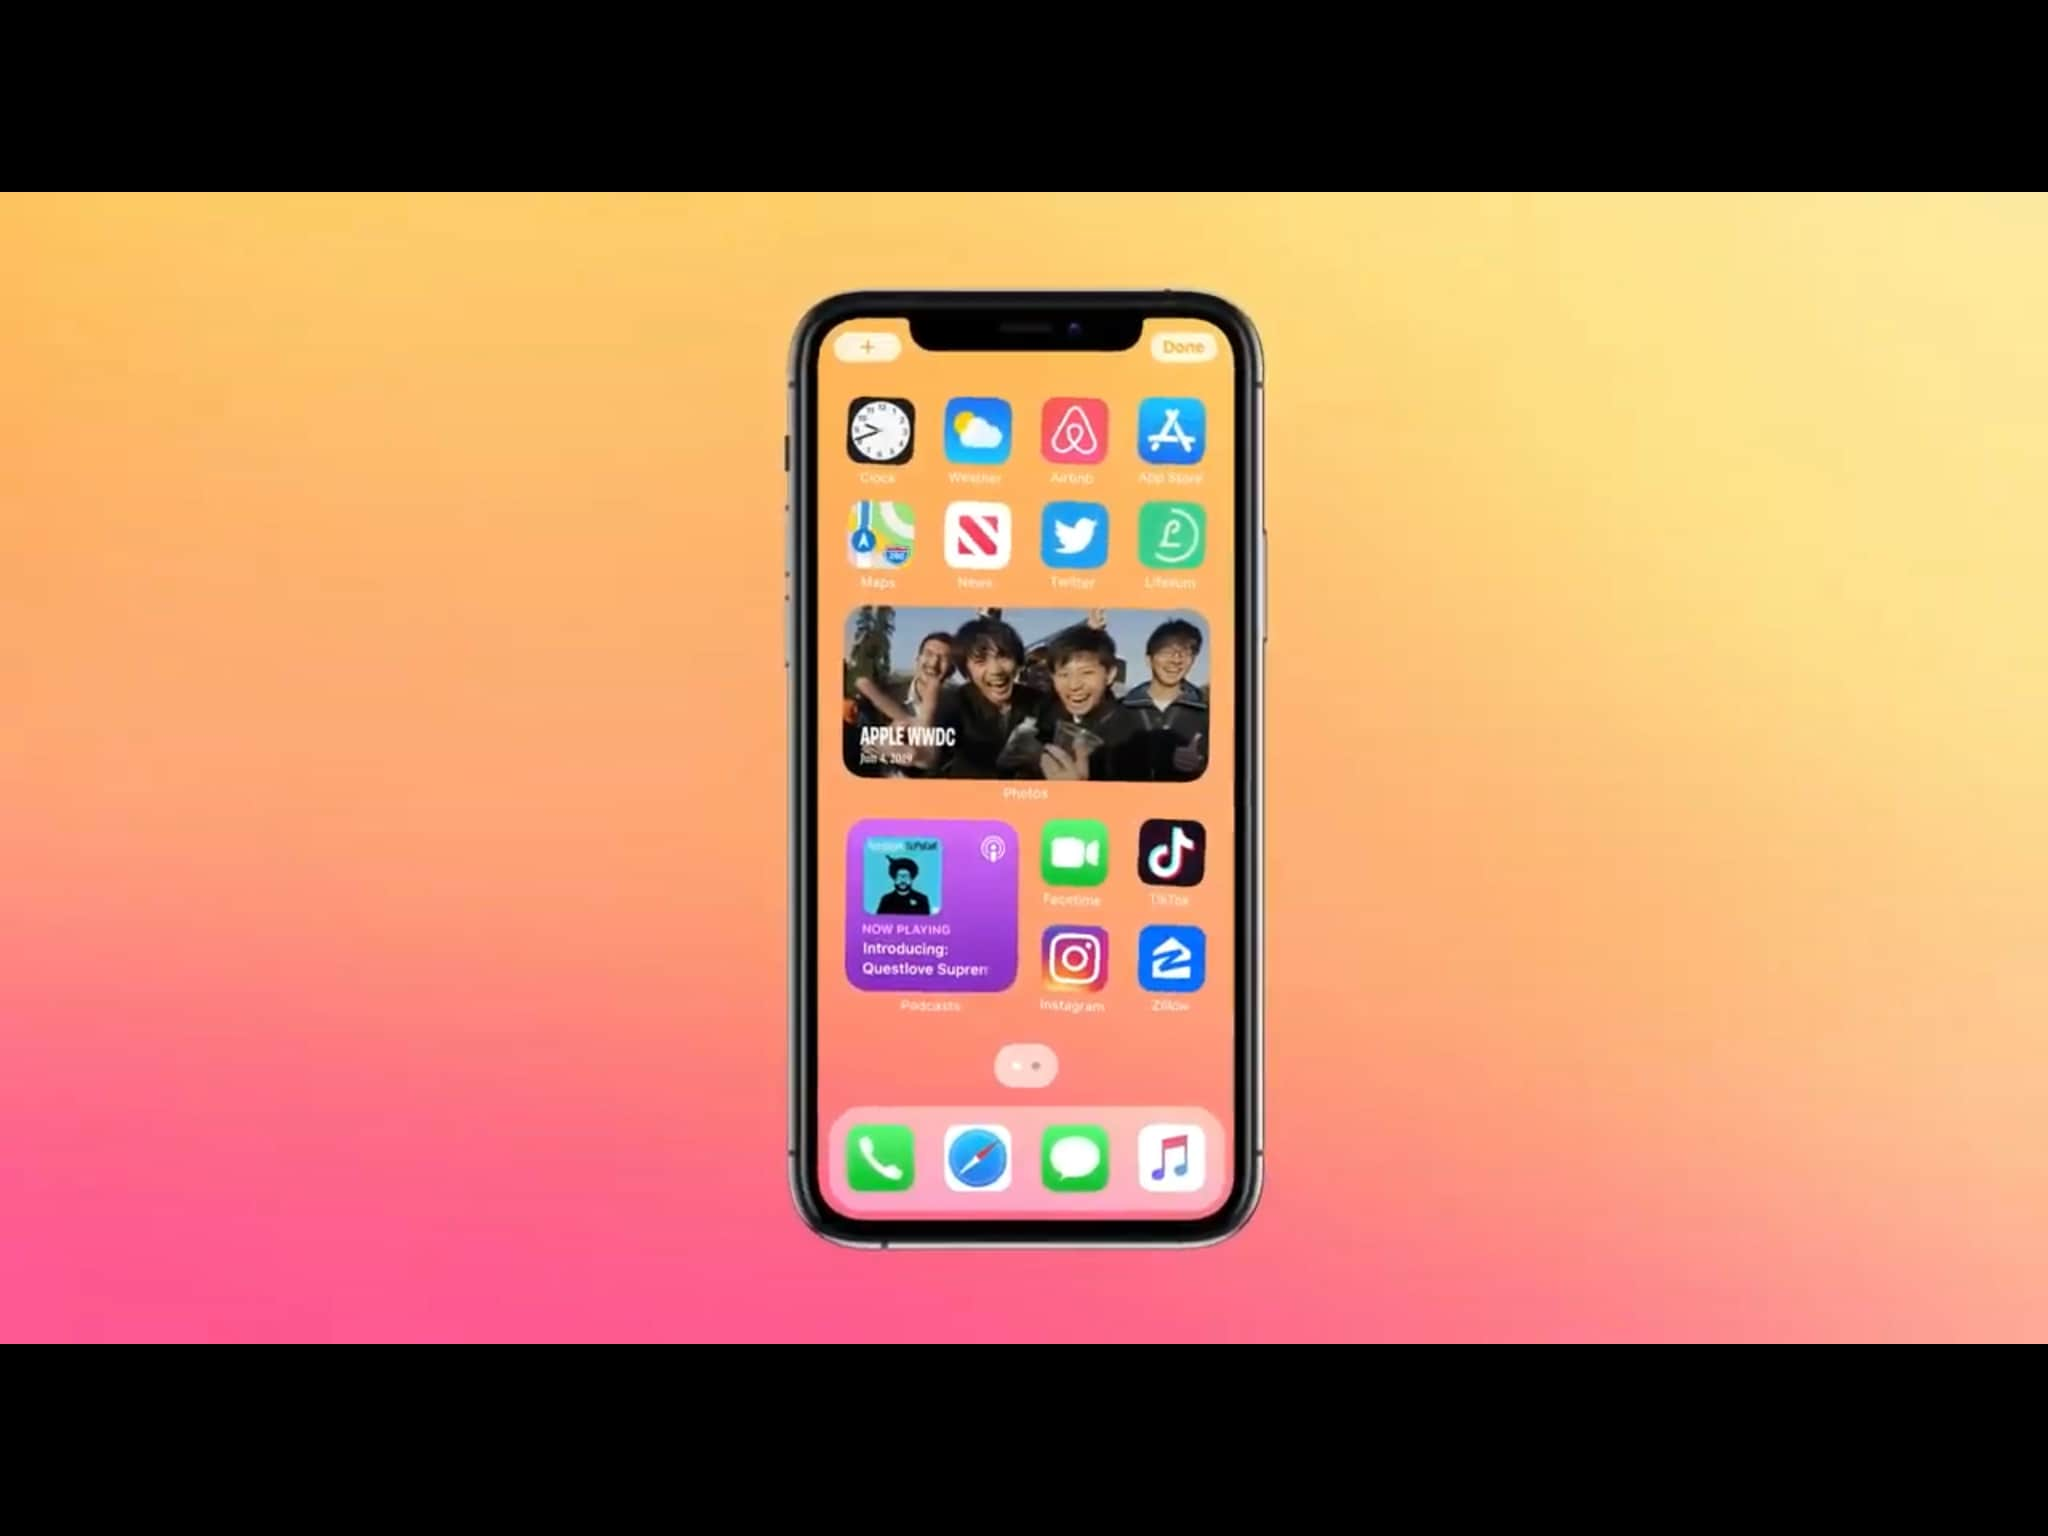 iOS 14 Launched, Mac's Move to Apple's Own Chipsets Announced: Highlights